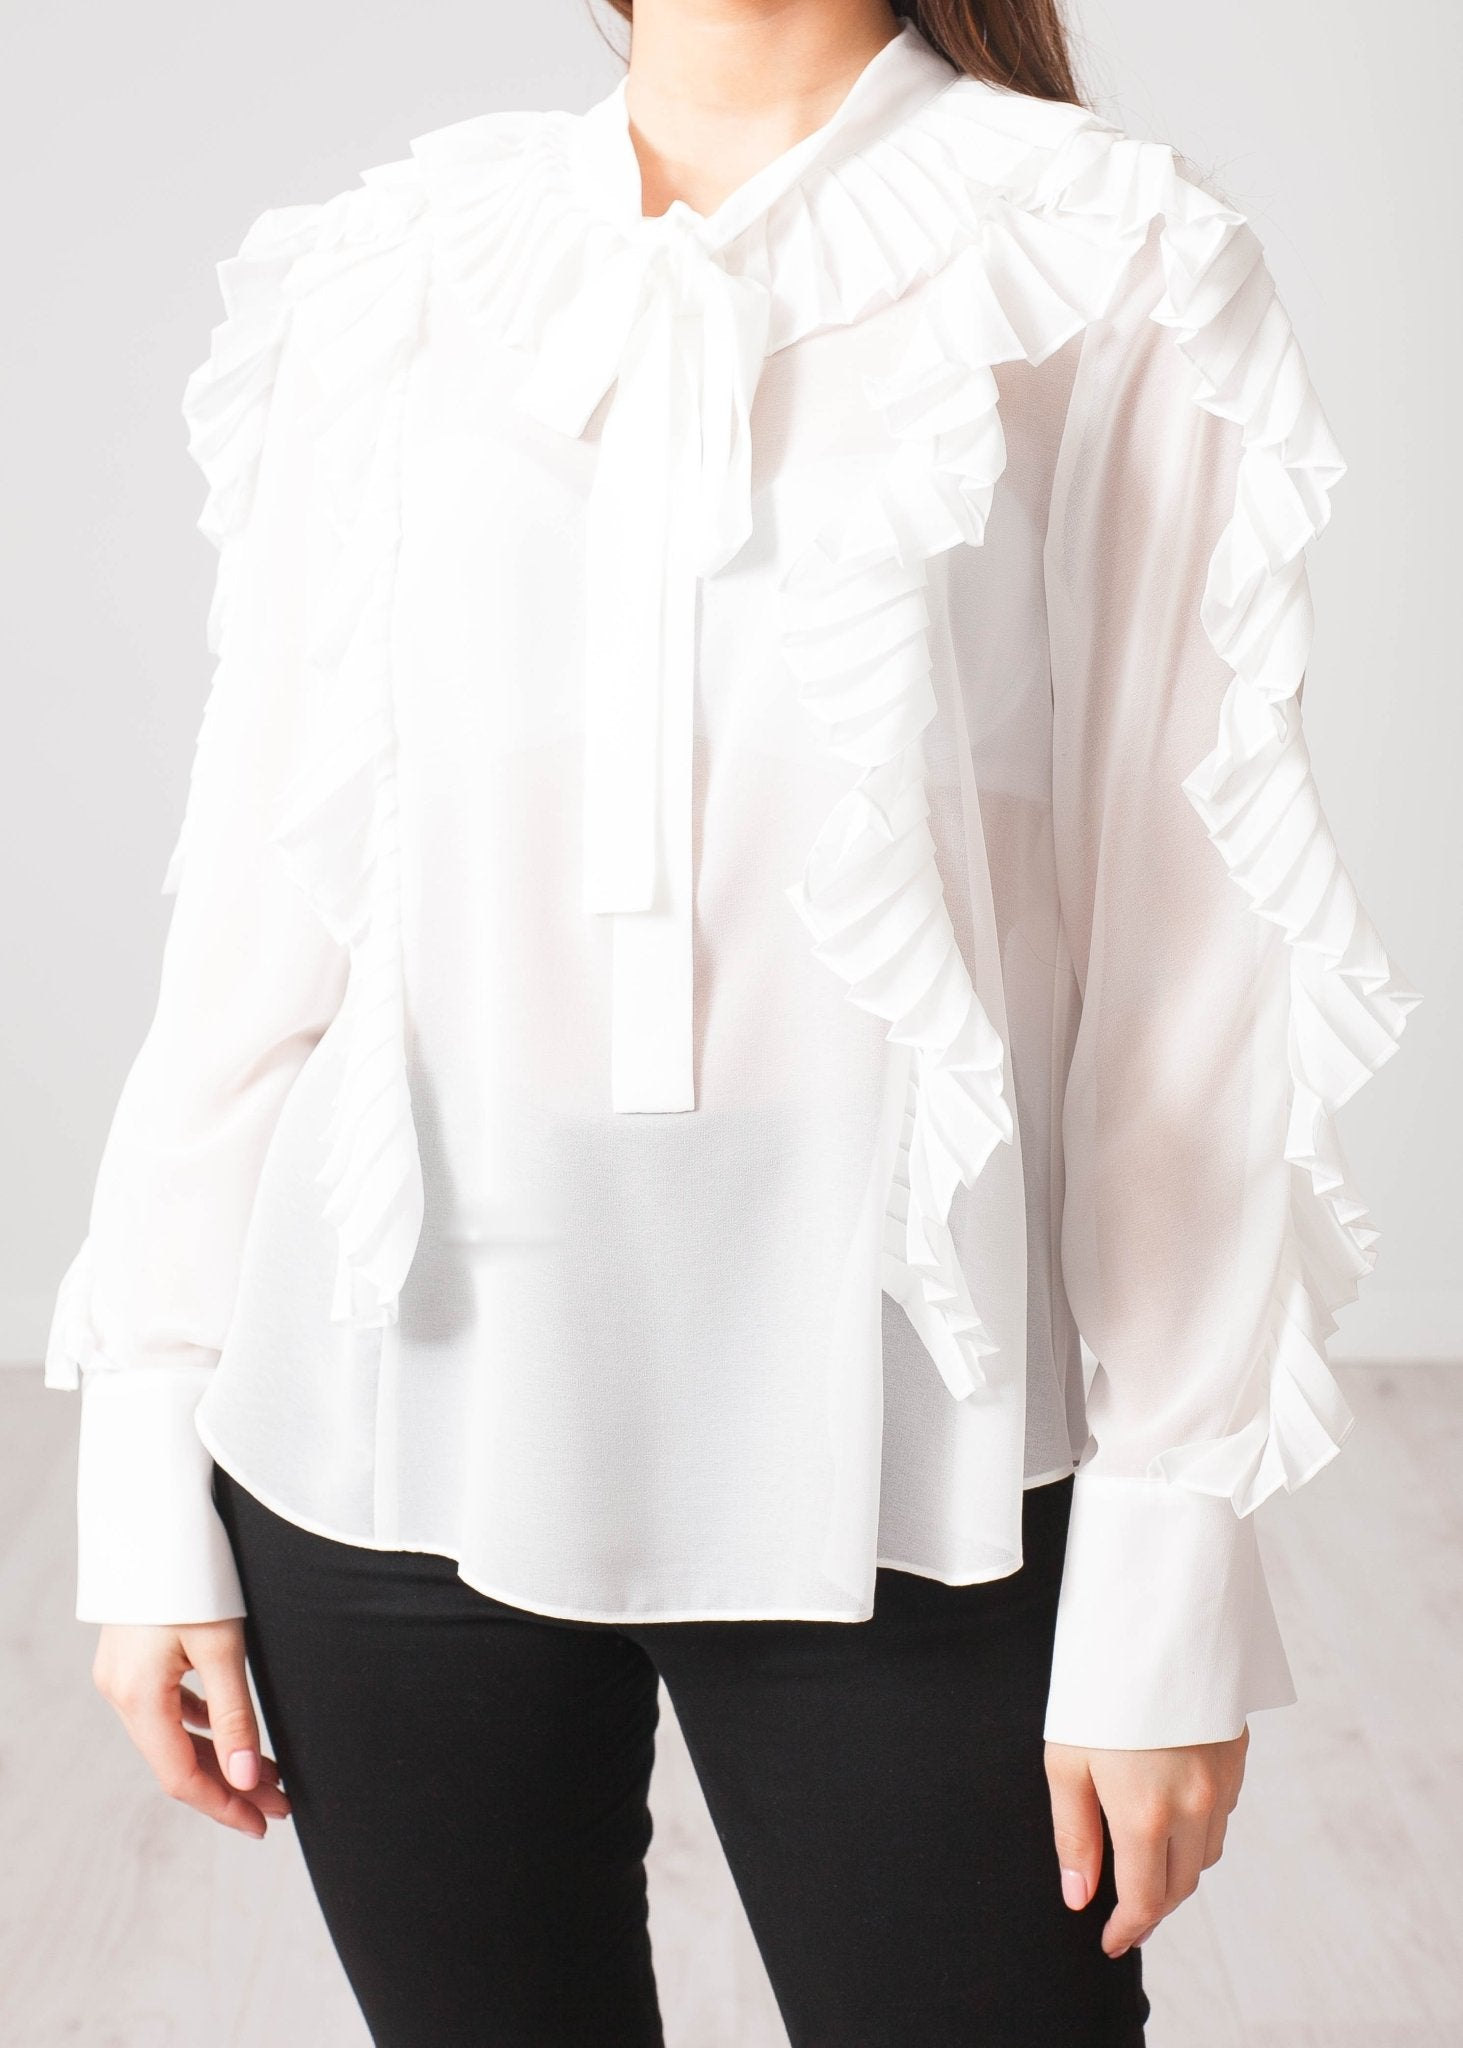 Aliyah White Blouse - The Walk in Wardrobe